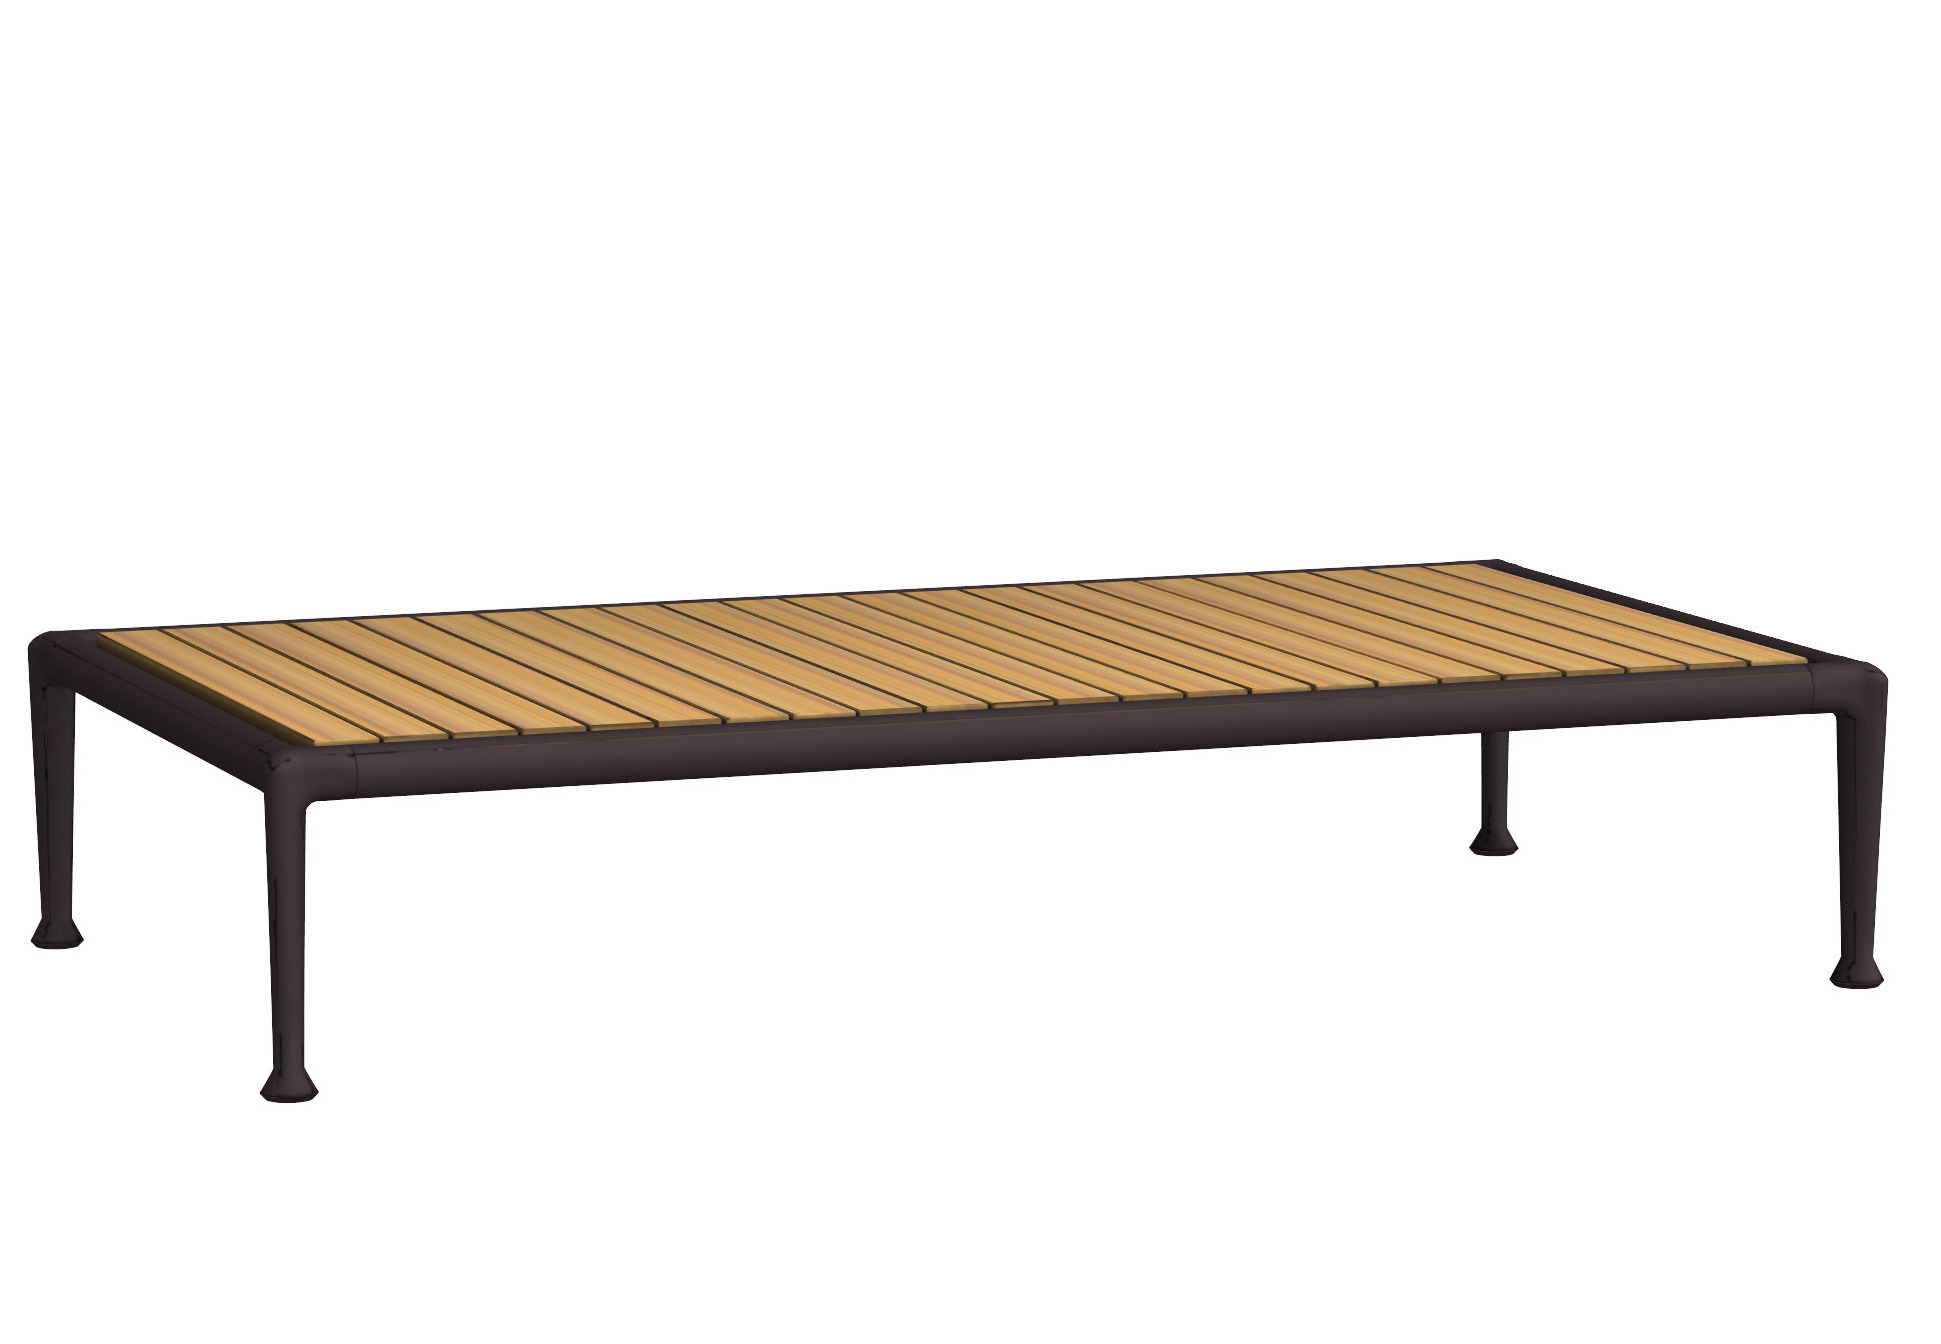 Unopiù Treble T - Outdoor Coffee Table